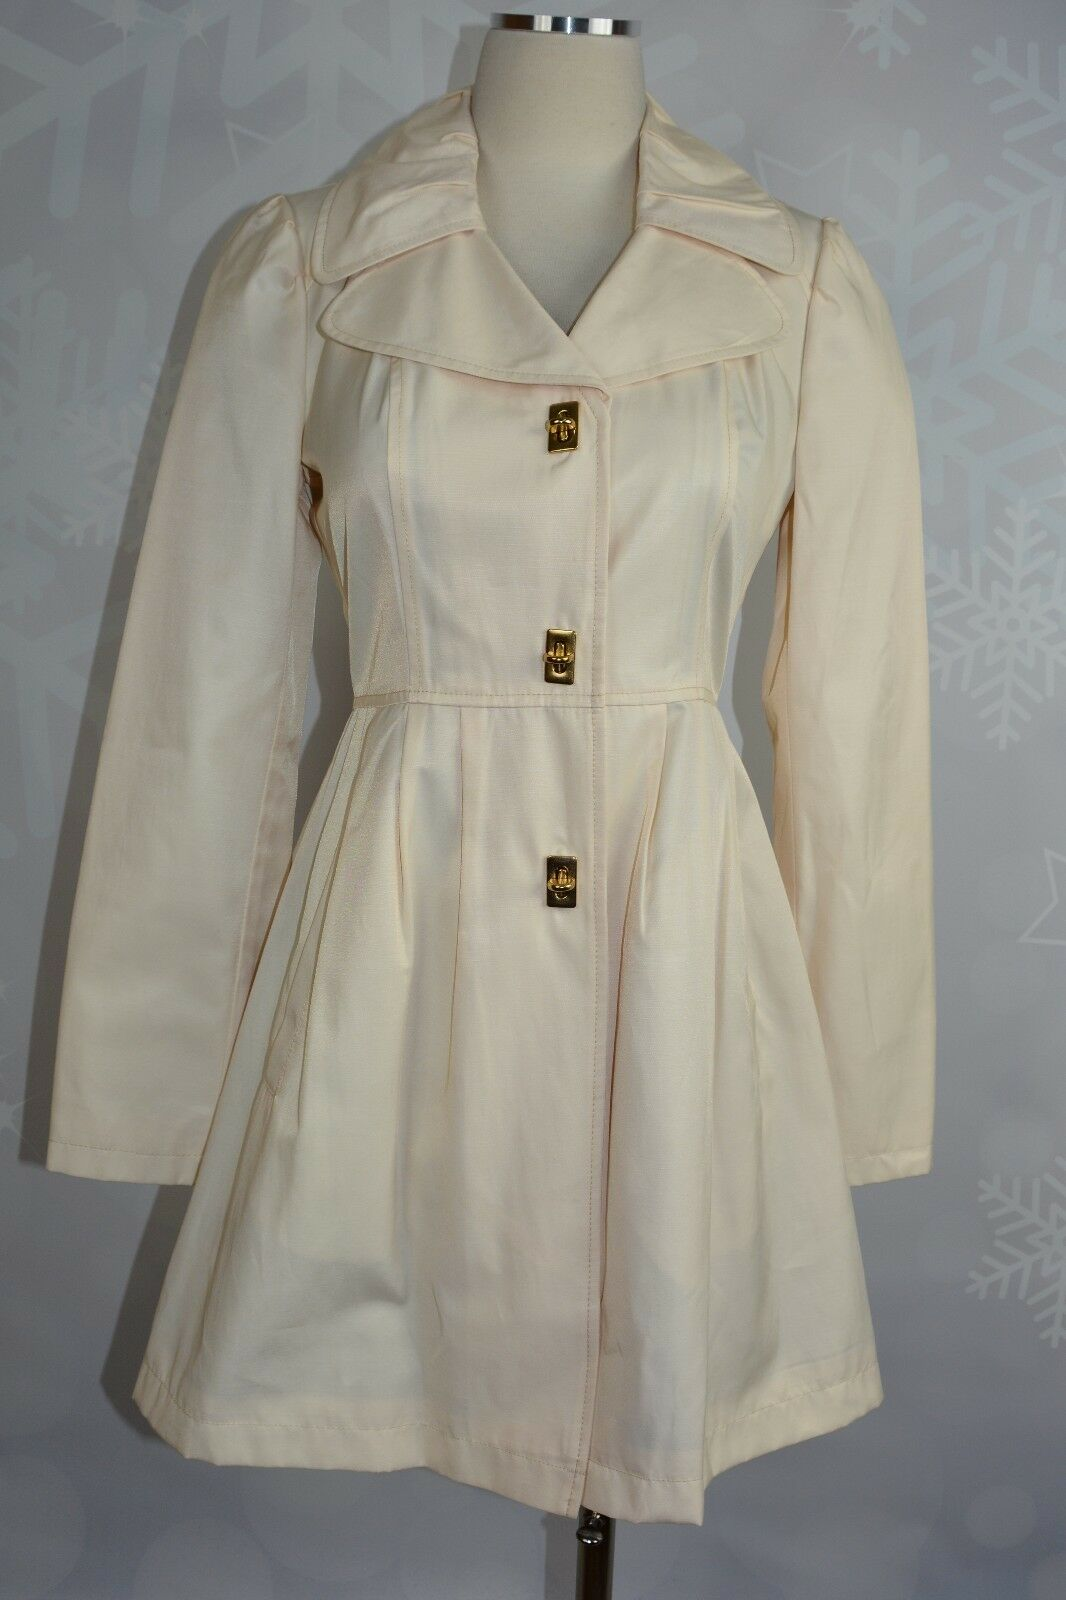 19b13aa0999 Kenneth Cole Cotton Blend Vanilla colord Trench Coat NWT size XS  ohnegj2237-Coats